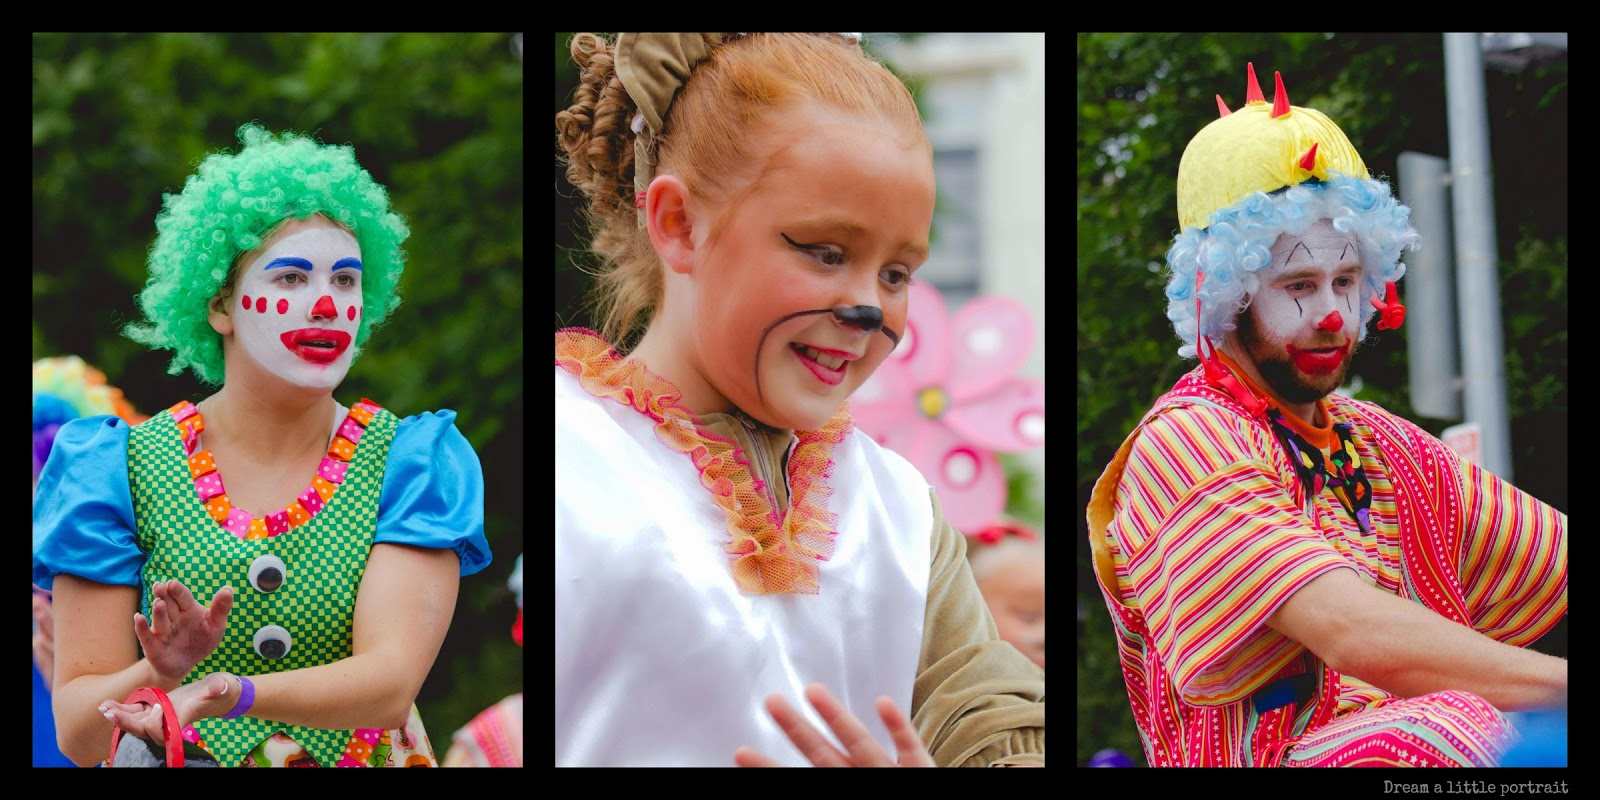 #cupageant by Dream a little portrait